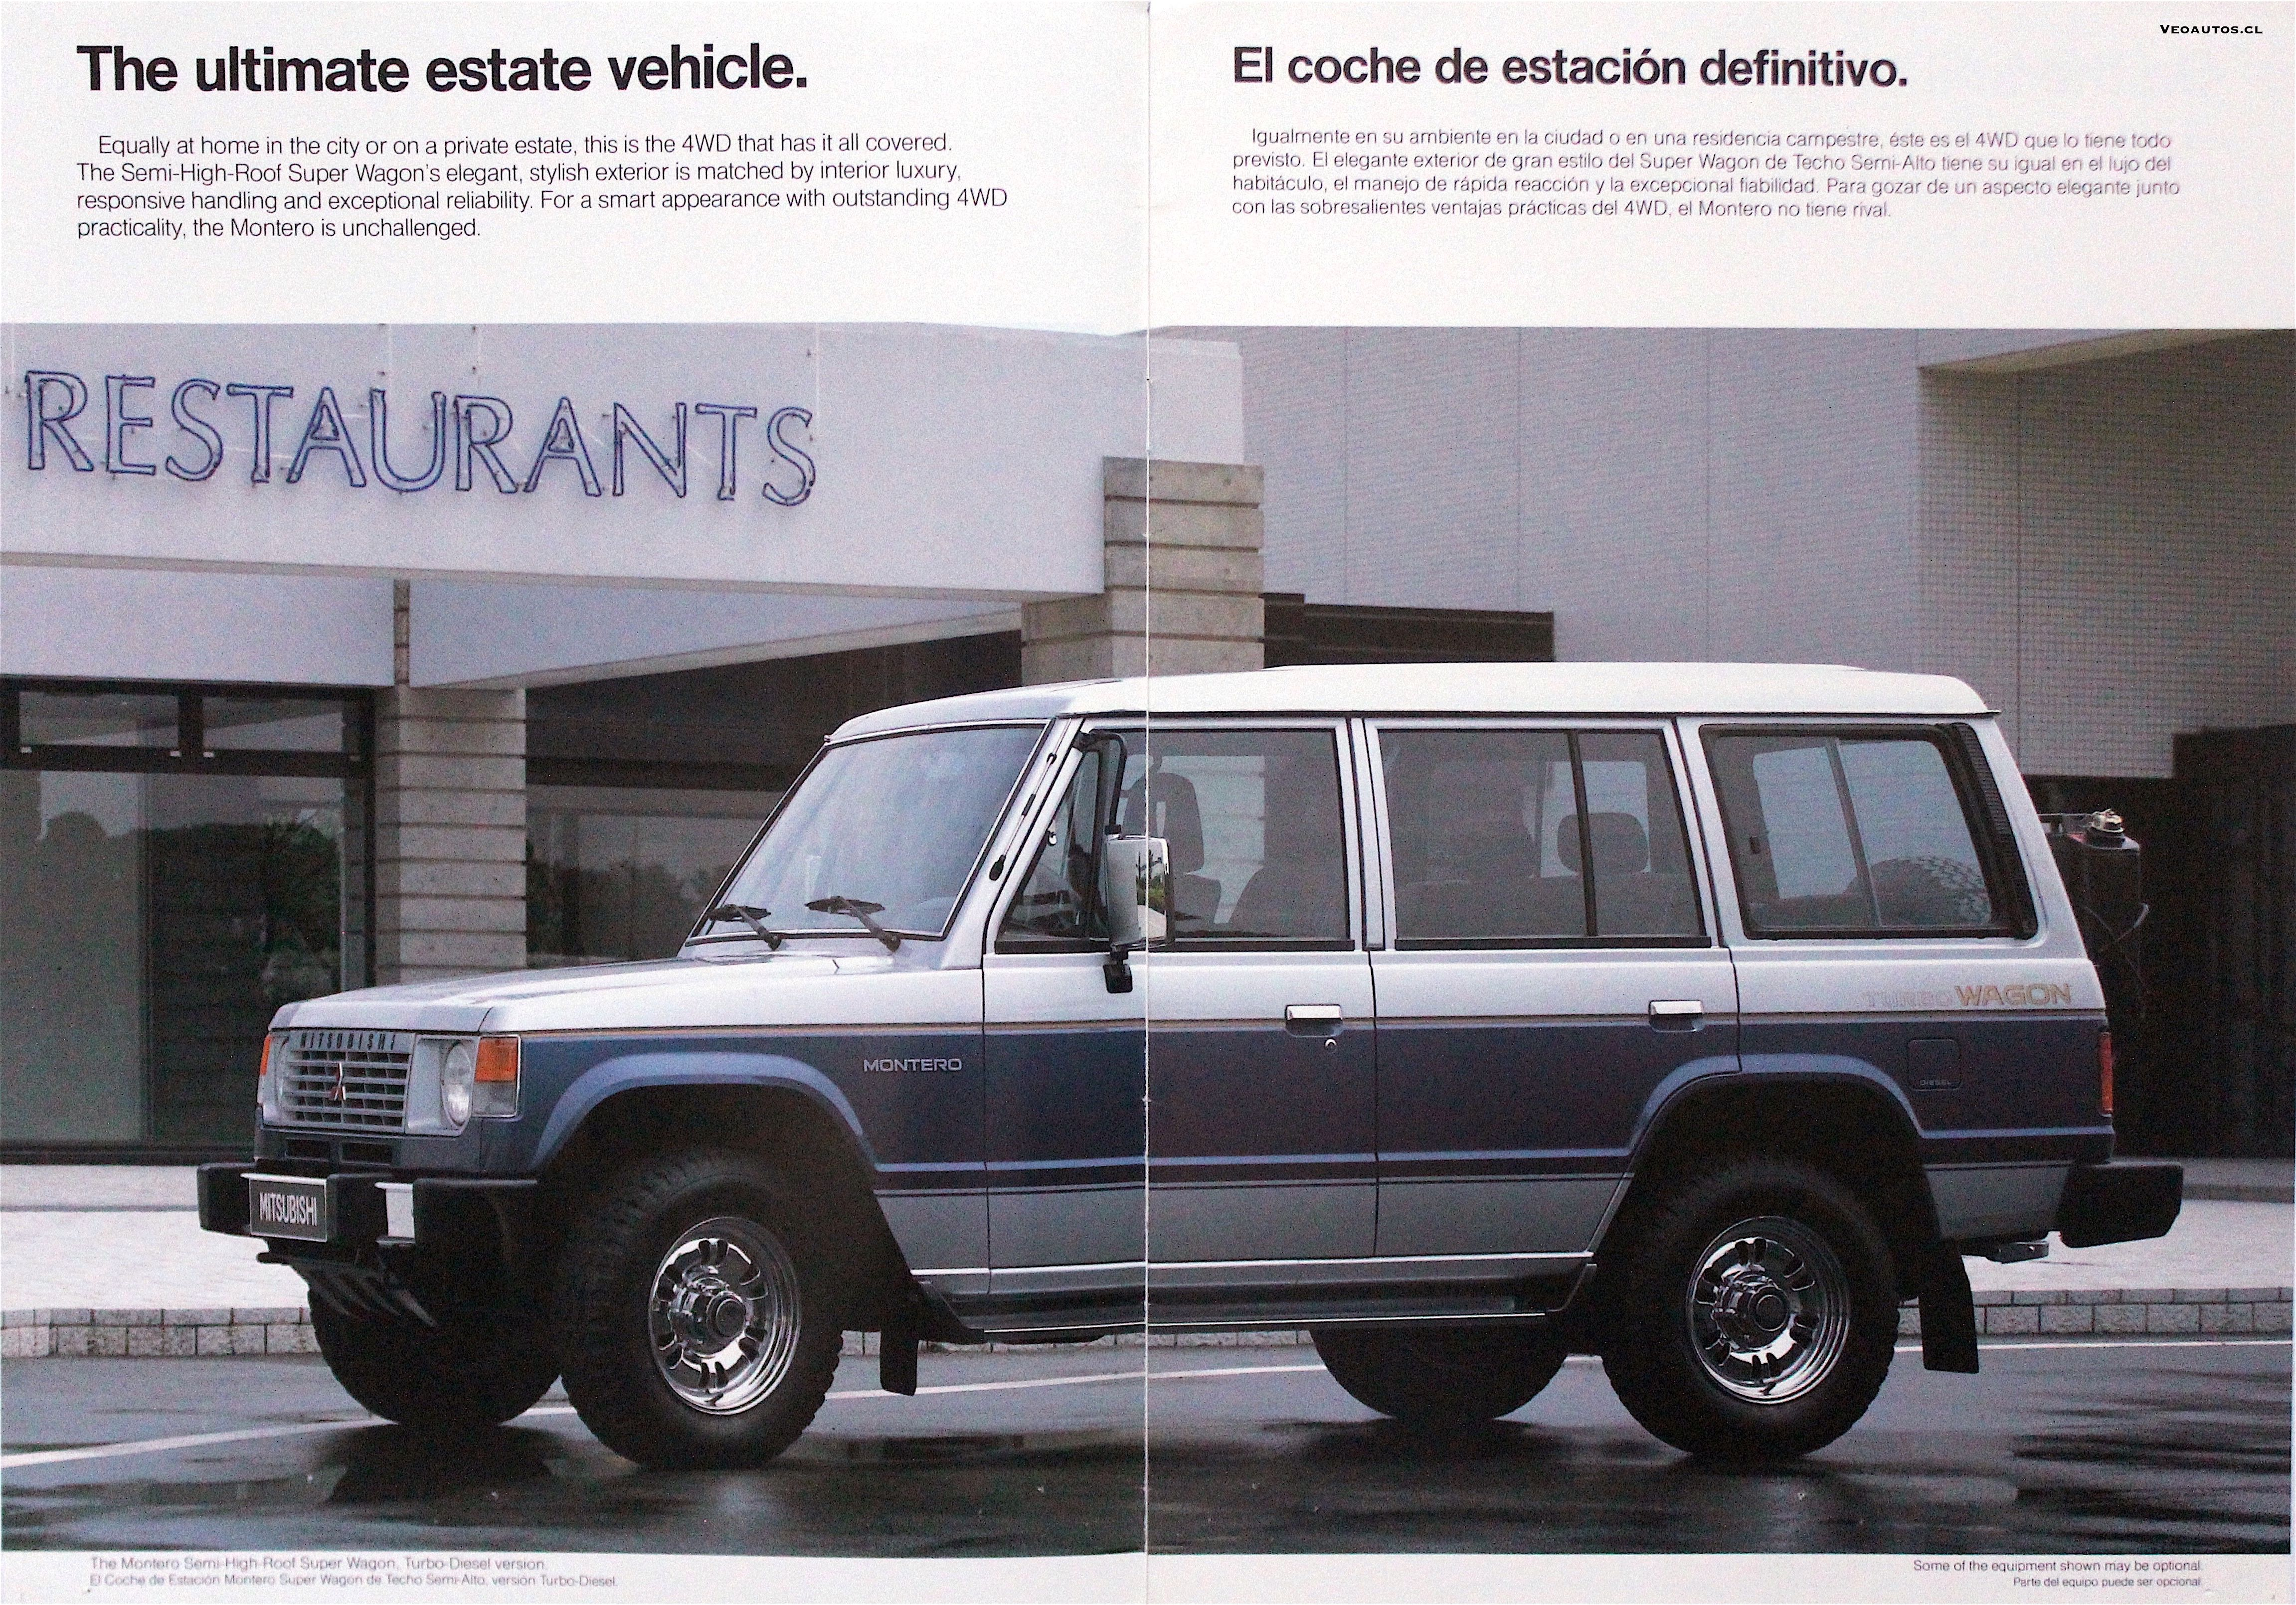 Mitsubishi Montero Catalogo 1989 Info Veoautos Cl En 2020 Todoterreno Autos Fotos Videos